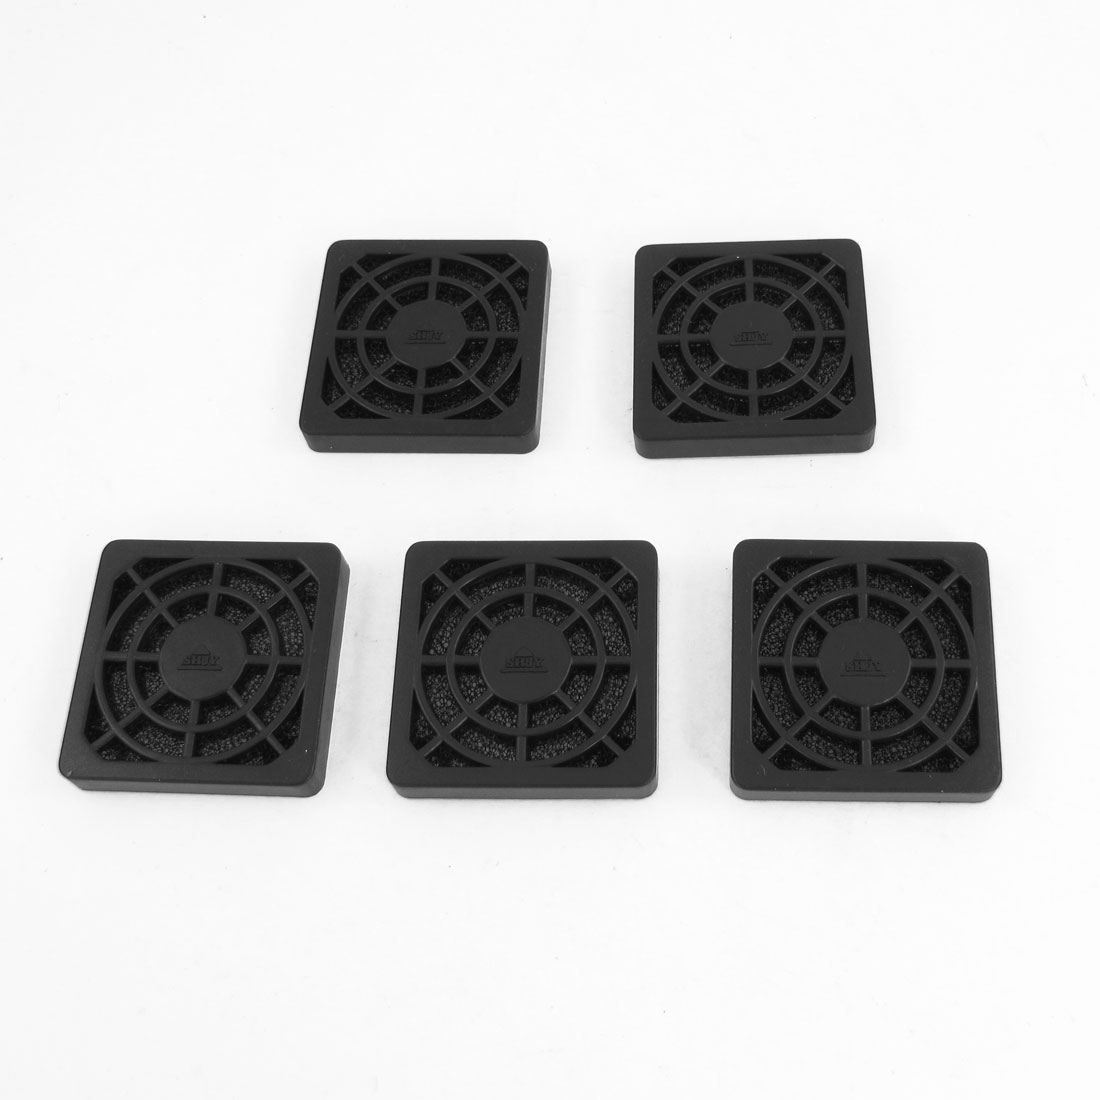 5 Pcs Computer Desktop Dust Proof Plastic Washable 4cm Fan Shield Filter Black